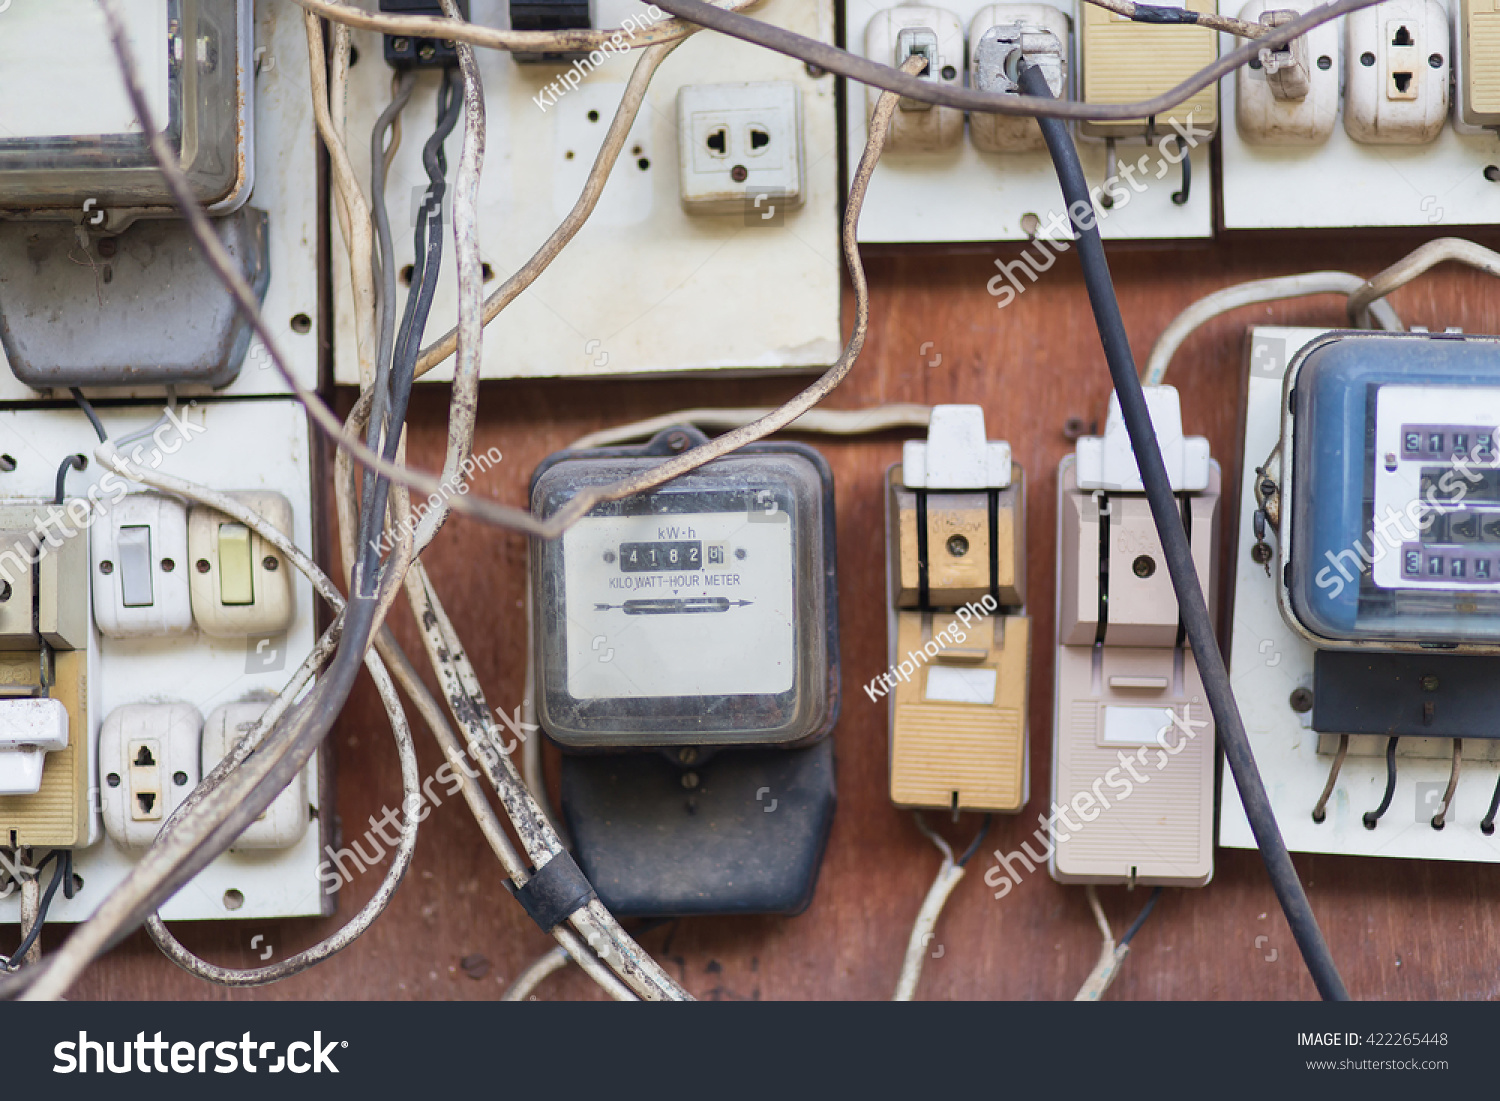 Breakers Switch Vector Flat Fuse Stock Photo Edit Now Wiring Circuit Box Electric Electrical Panel